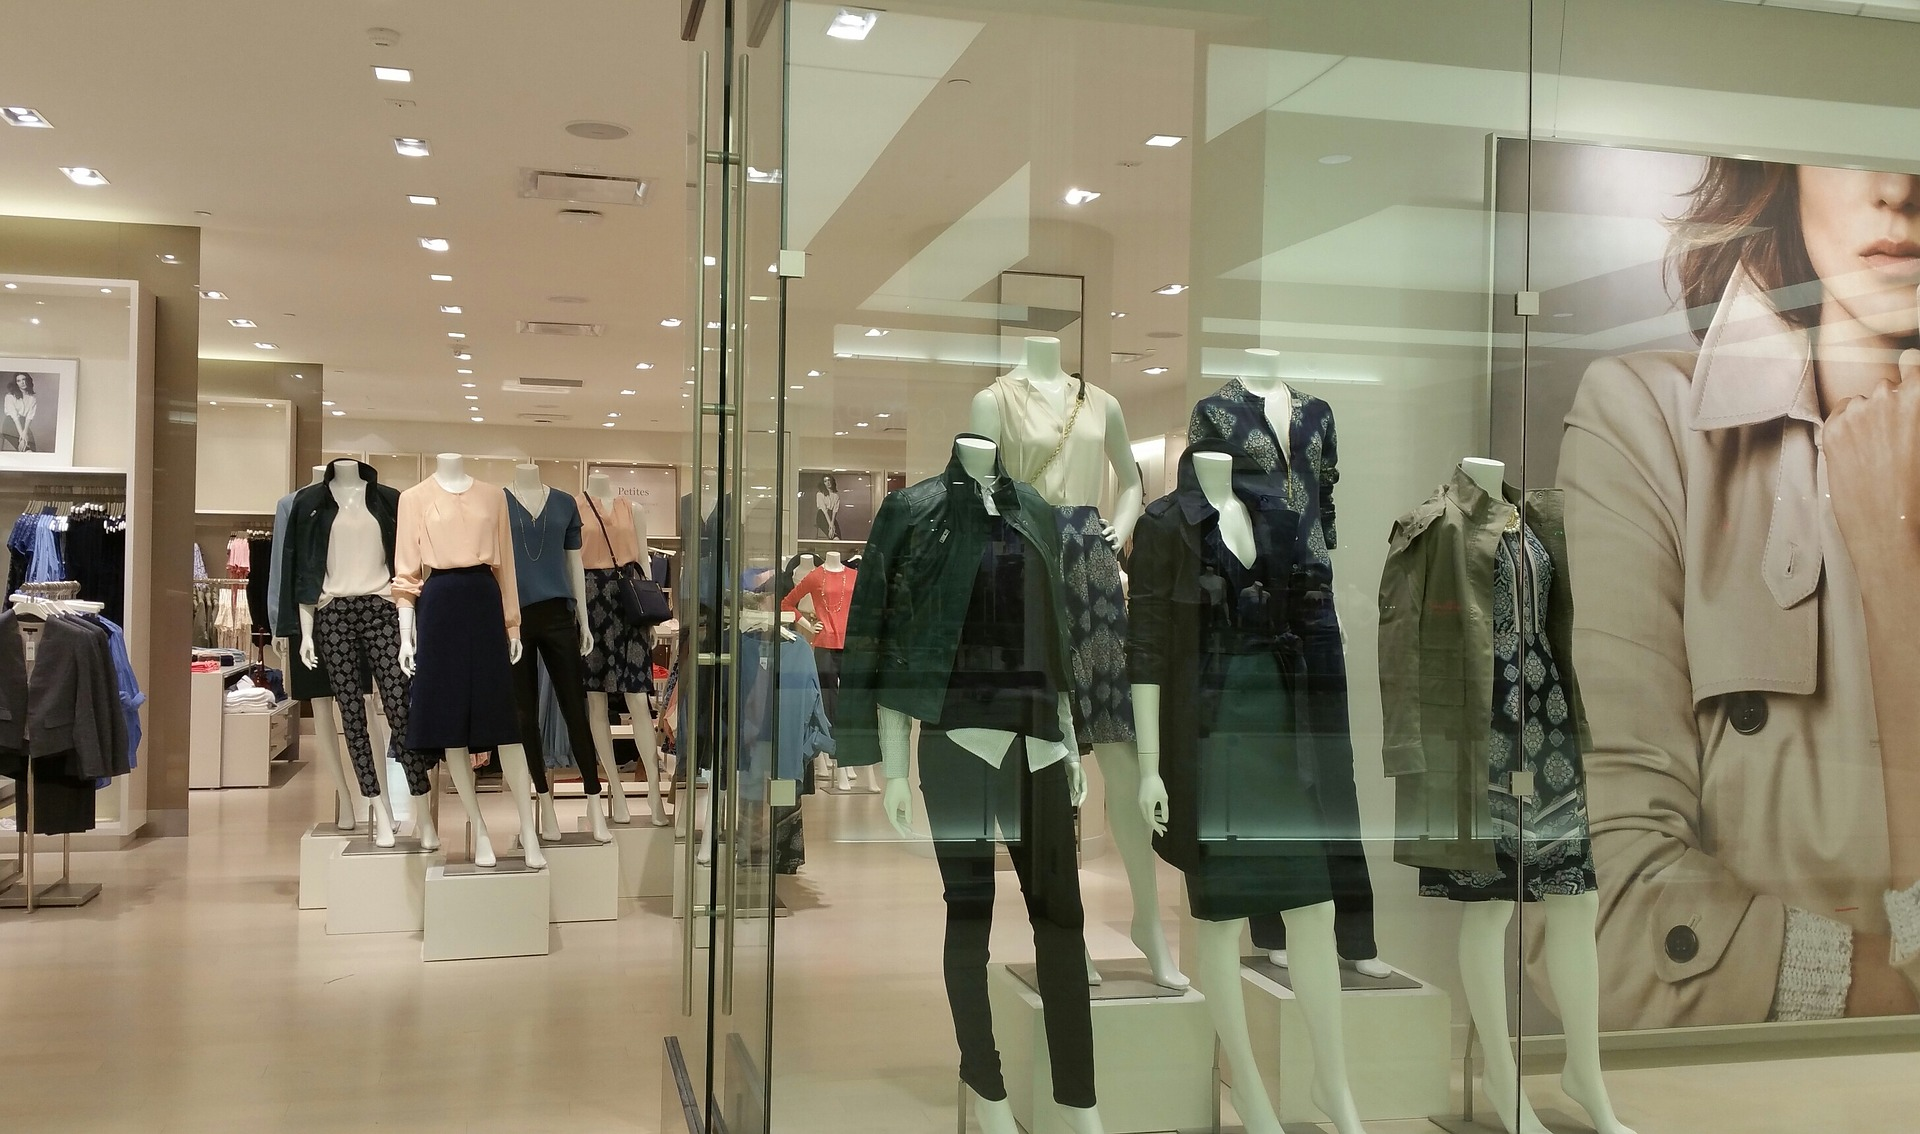 Visit stores that carry your brand for feedback